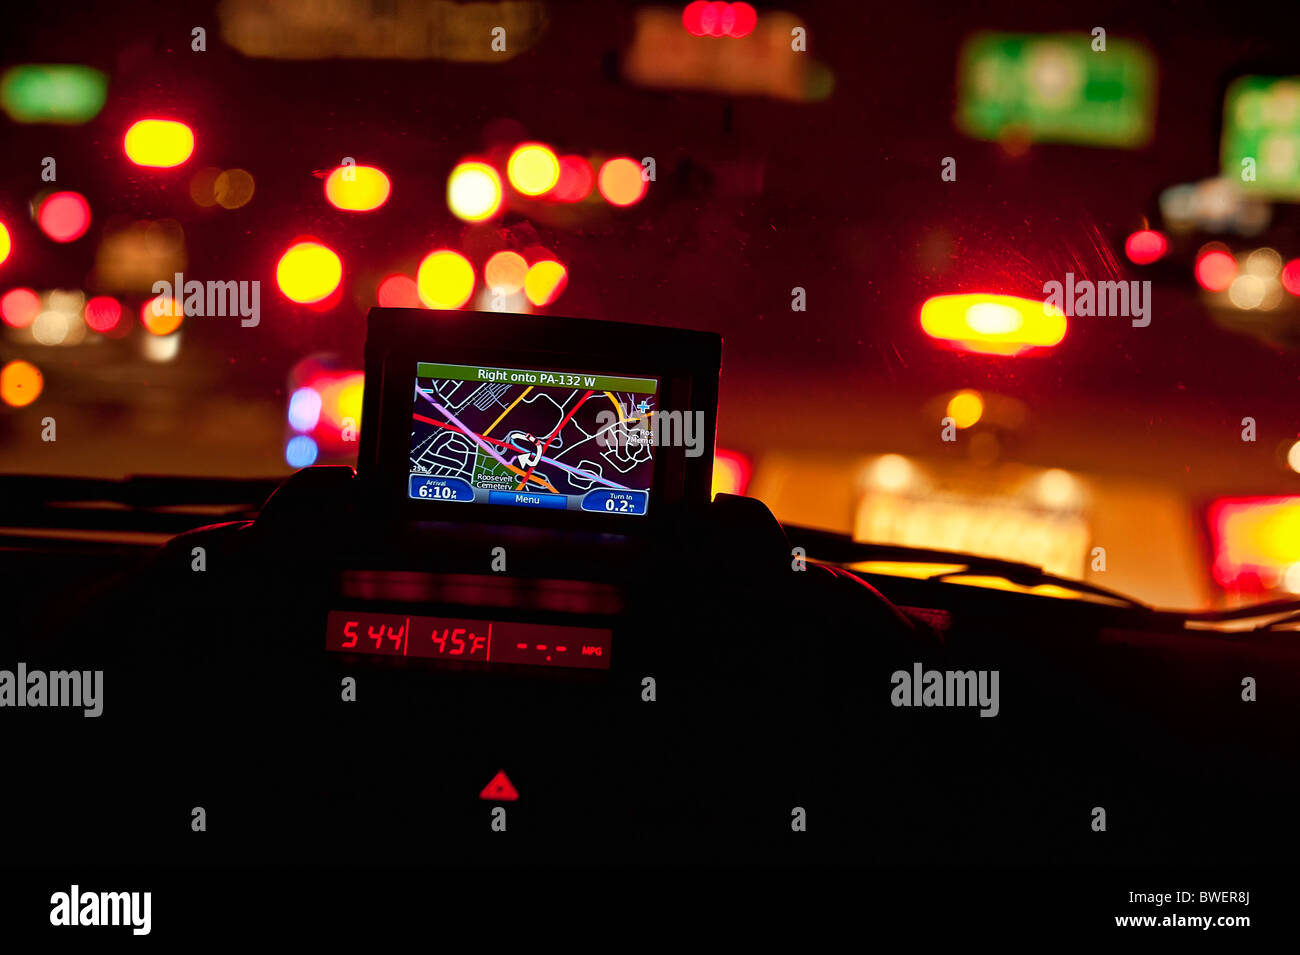 GPS unit in the window of a car in traffic. - Stock Image